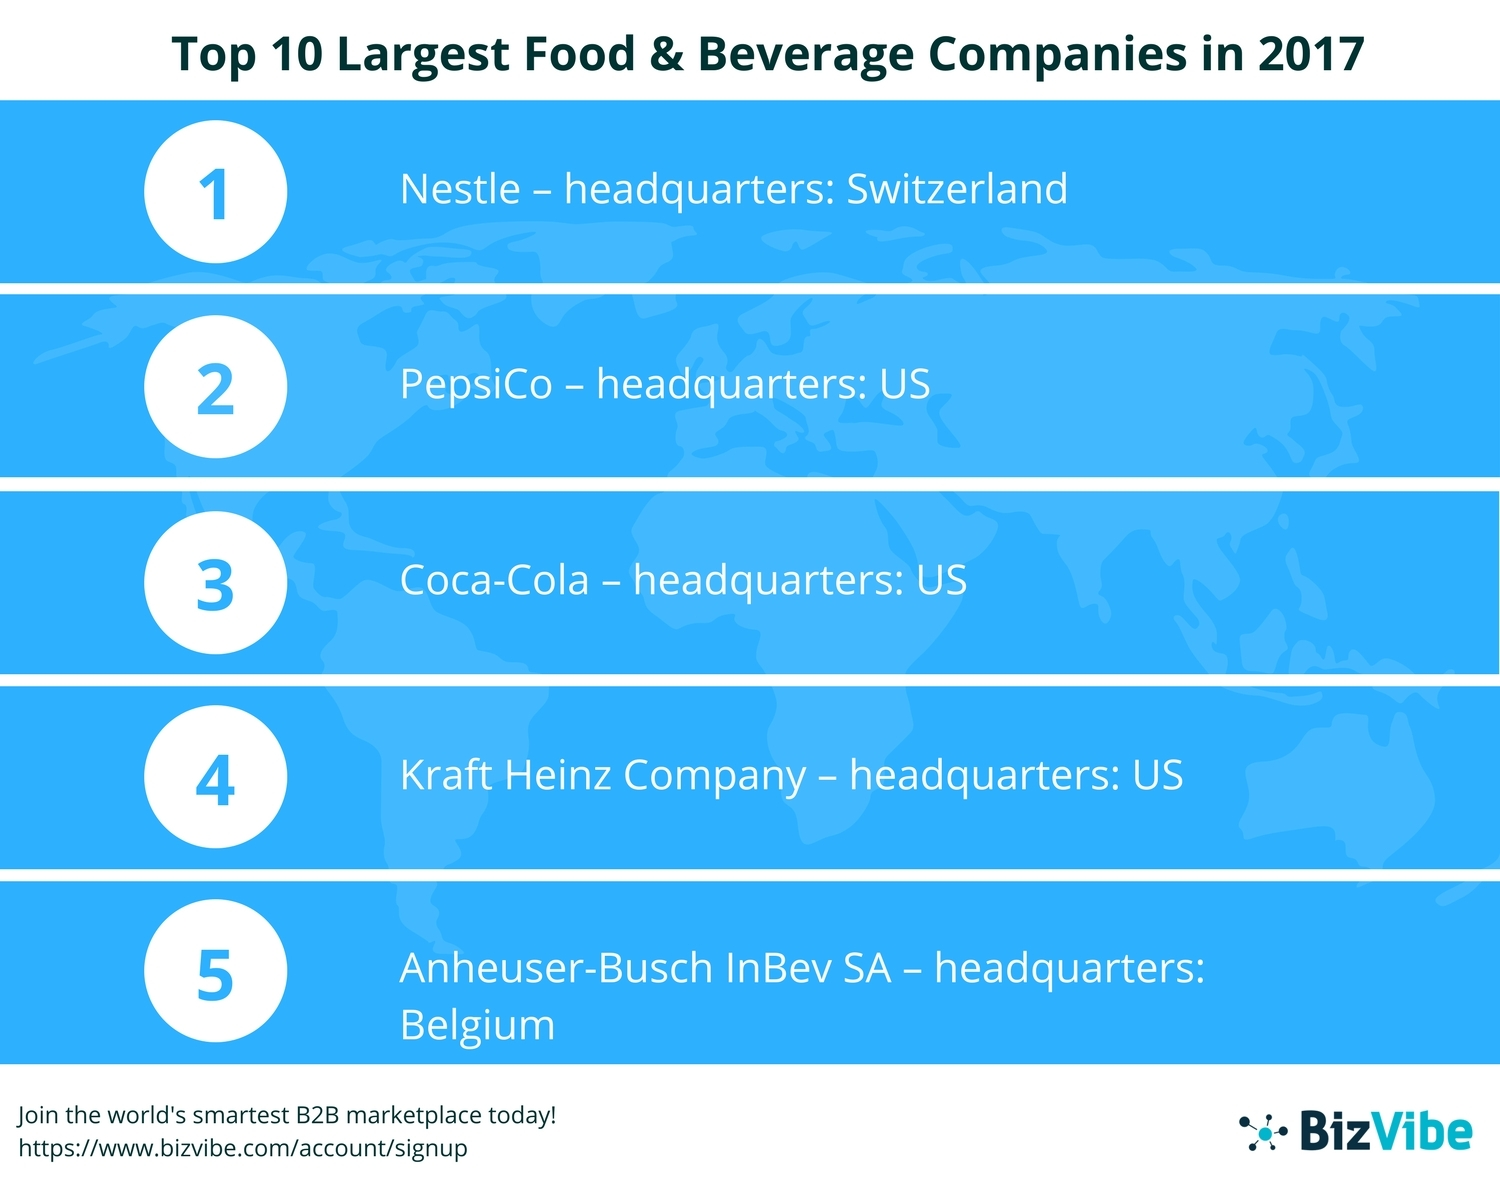 BizVibe Announces Their List of the Top 10 Largest Food & Beverage ...